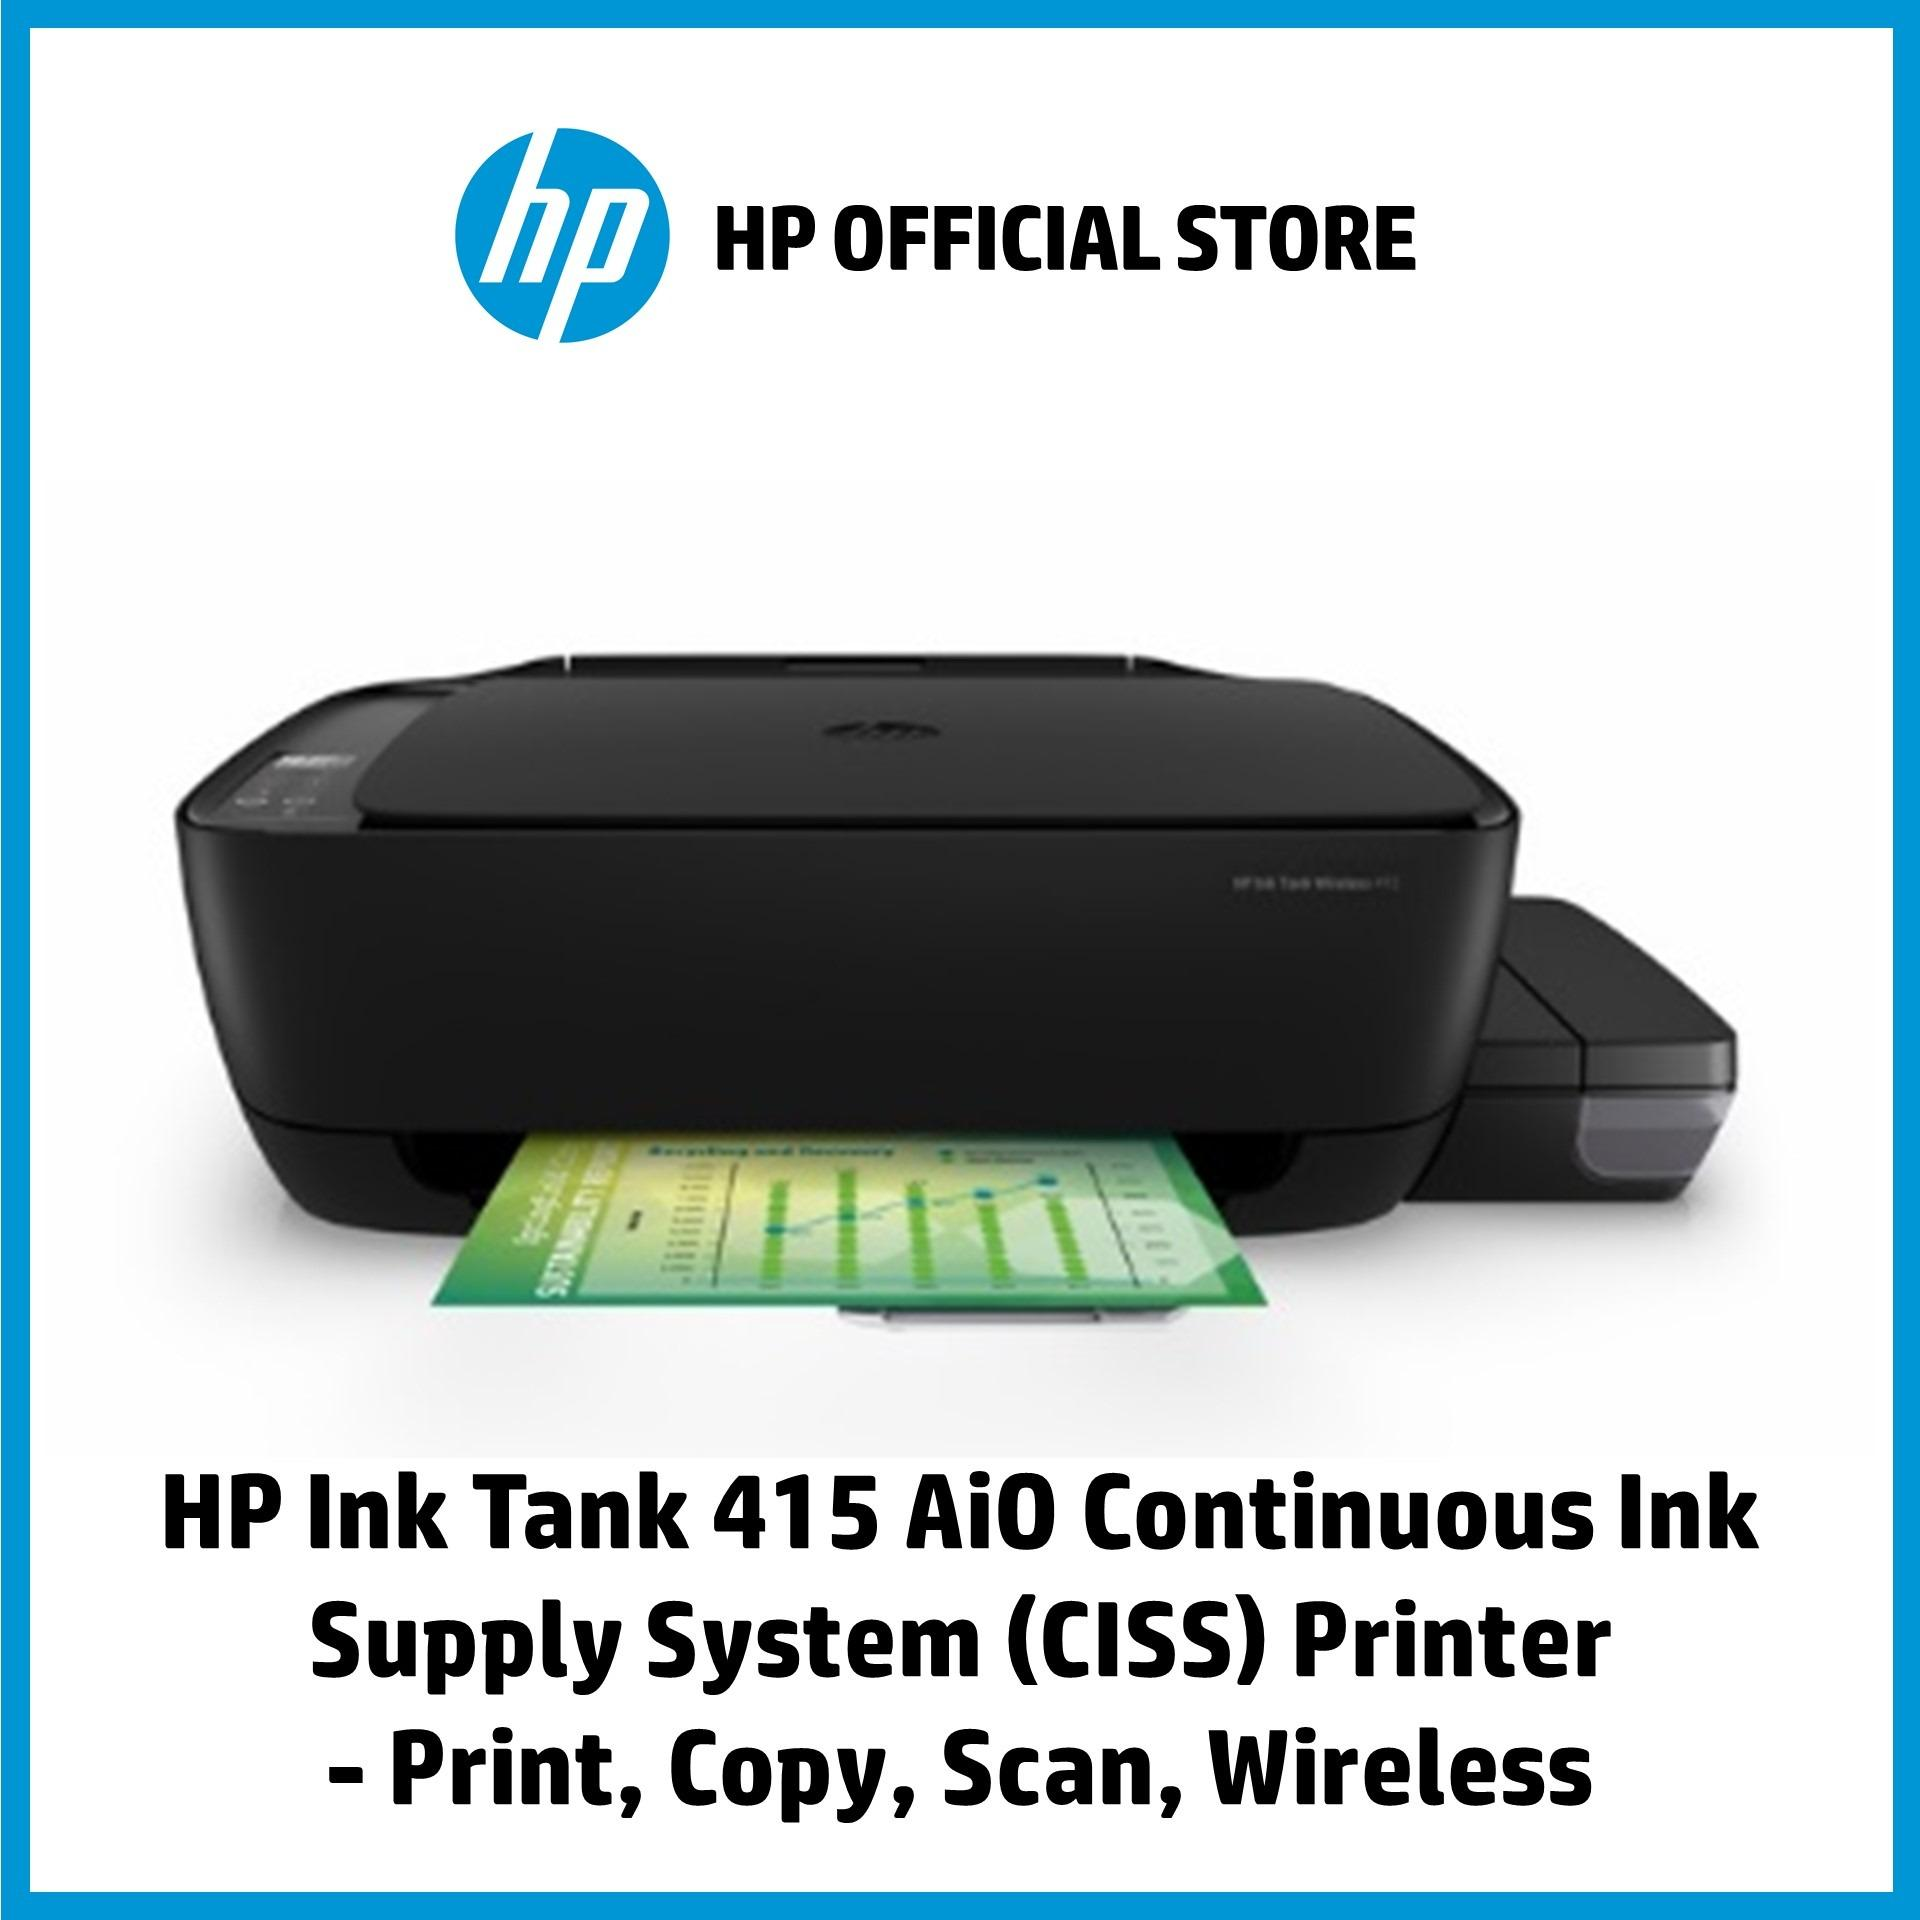 HP Ink Tank 415 AiO Continuous Ink Supply System (CISS) Printer - Print,  Copy, Scan, Wireless